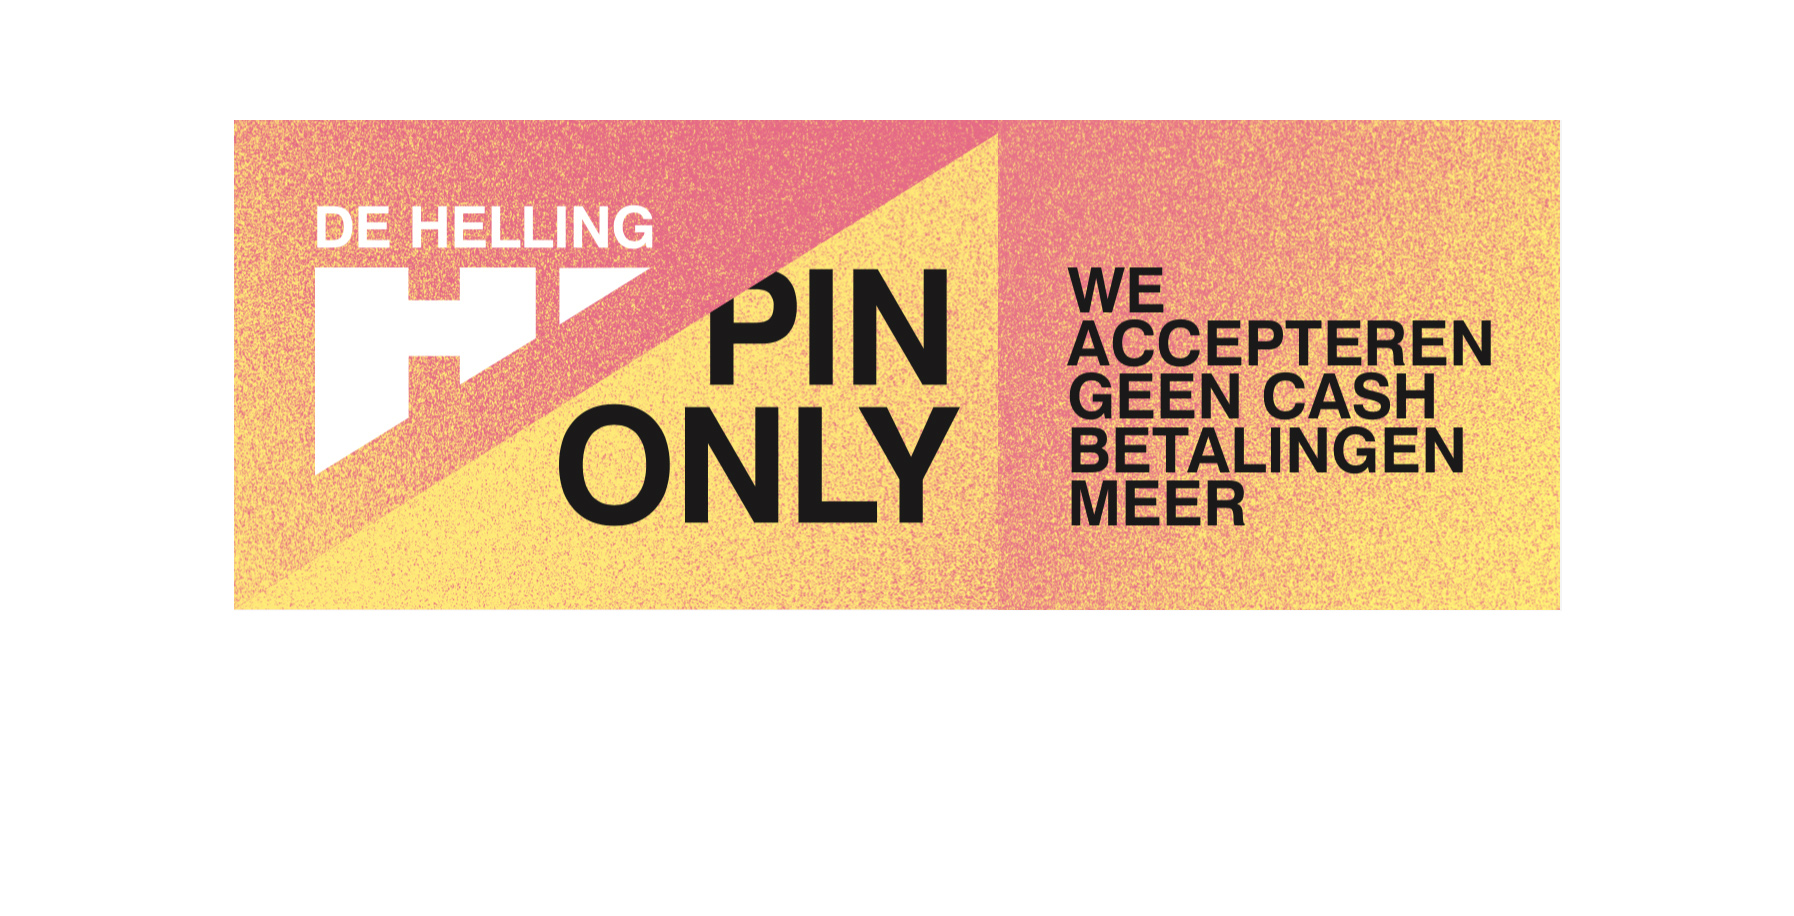 De Helling pin-only